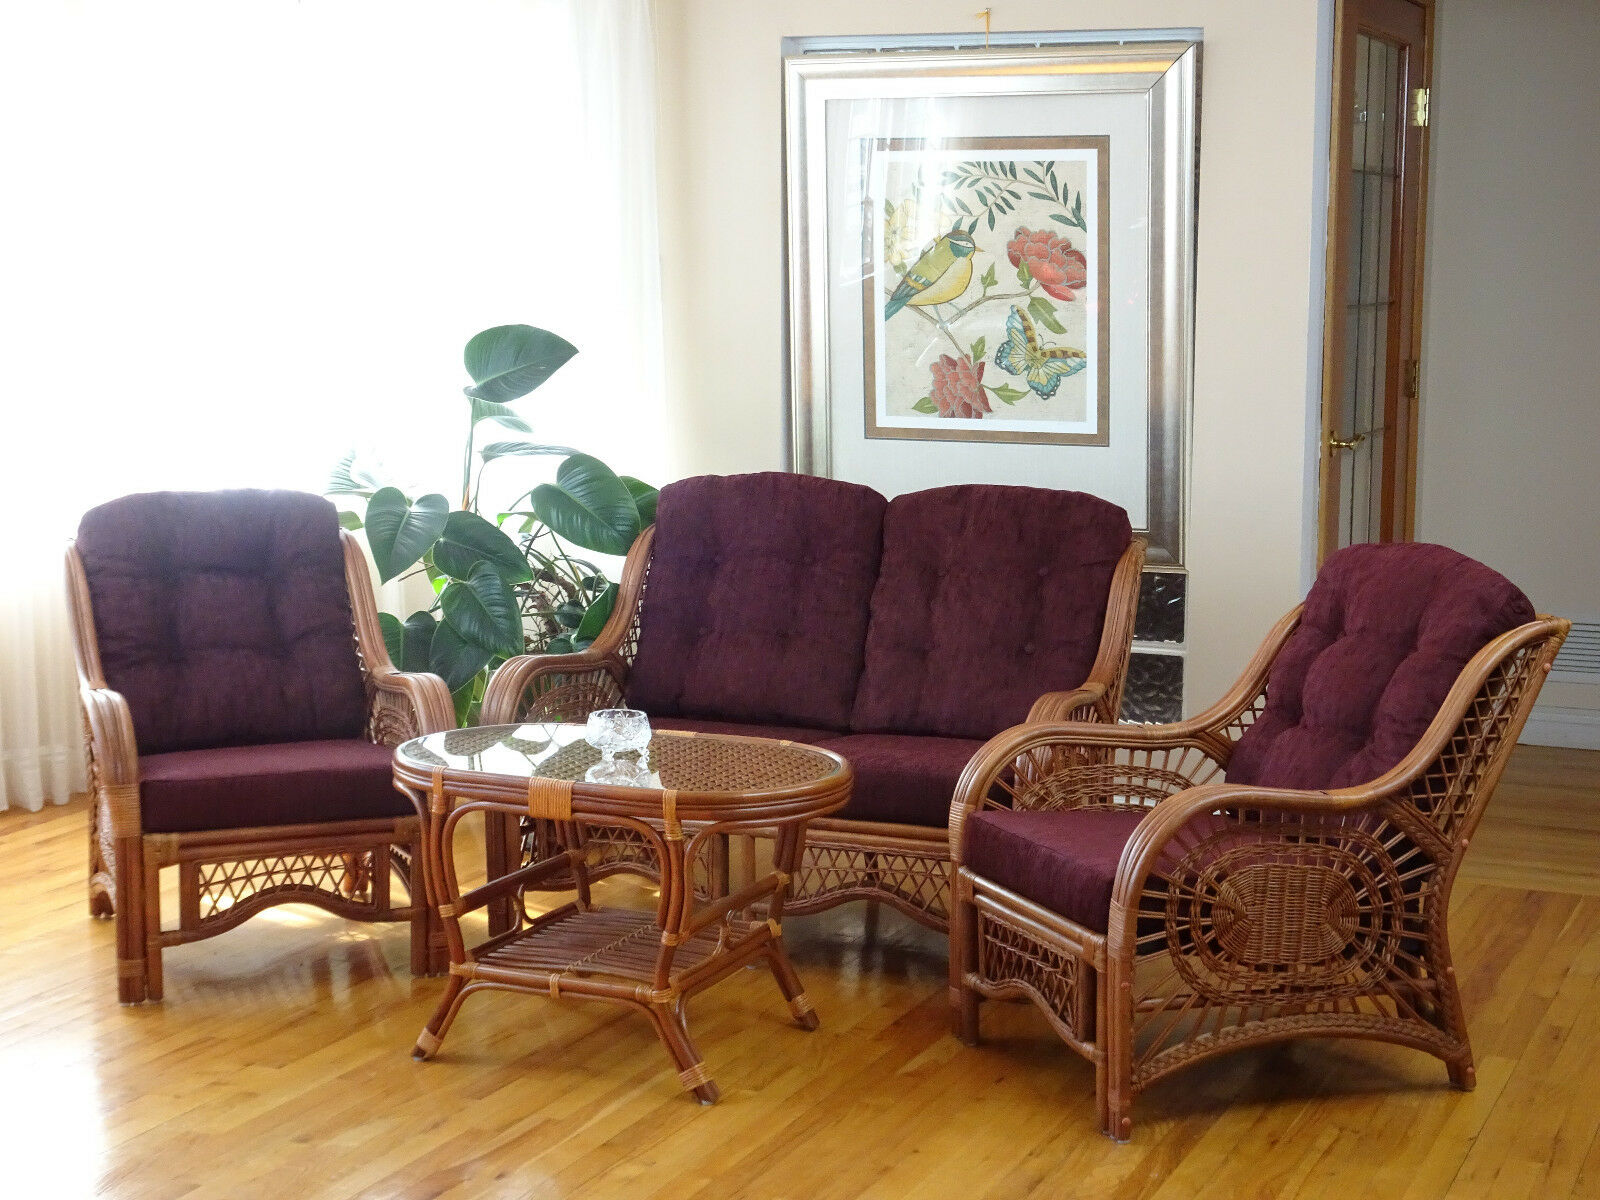 Malibu Rattan Living Set 2 Chairs Loveseat Coffee Table Colonial with Cushions